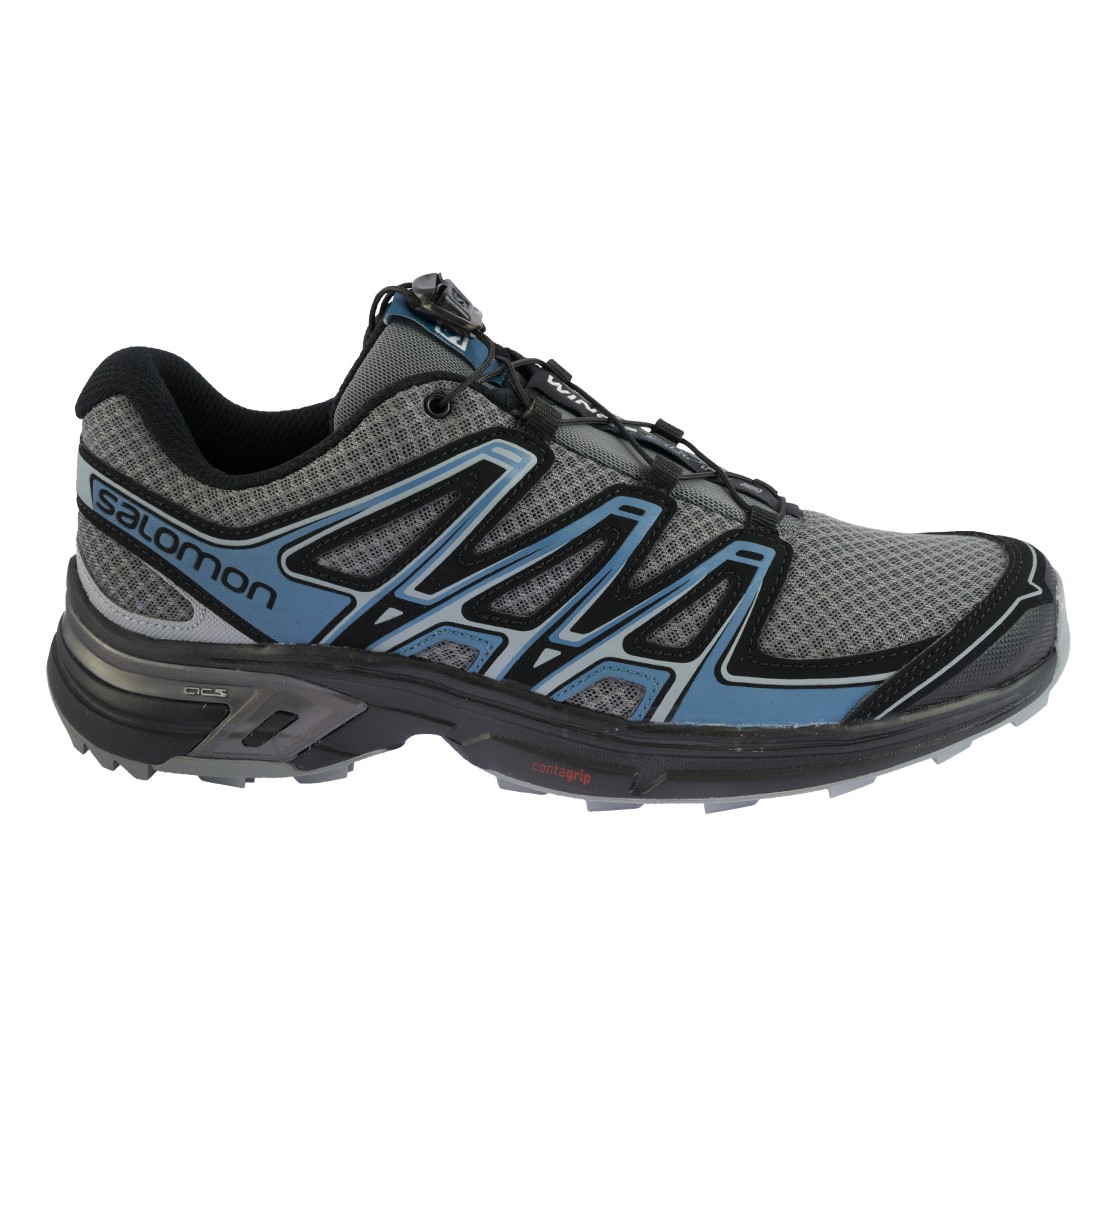 Salomon Ανδρικό Παπούτσι Trail Running Wings Flyte 2 394714